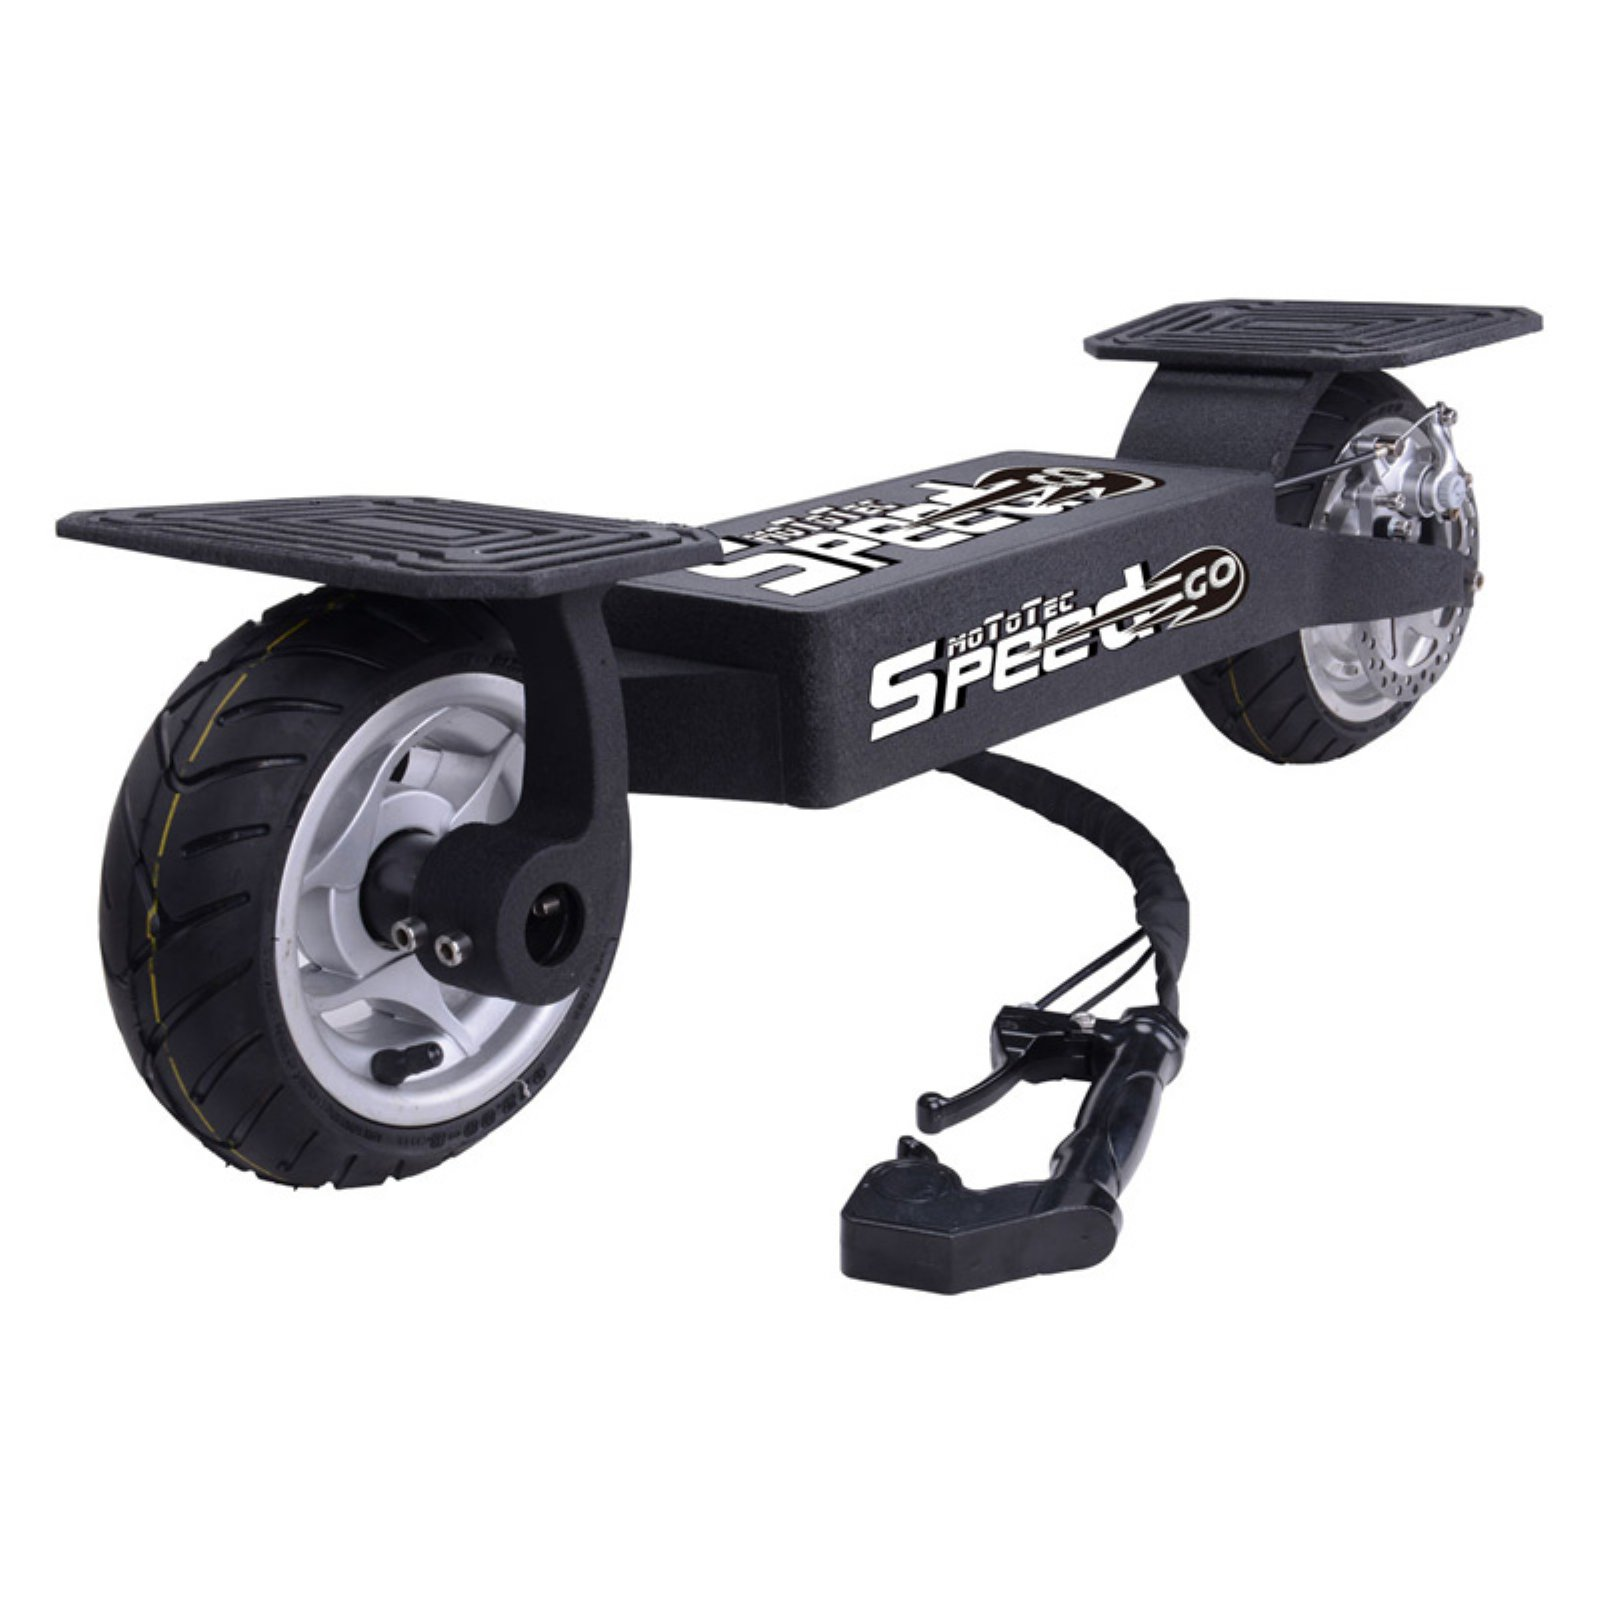 MotoTec 36 Volt Electric Speed Go Board, Black